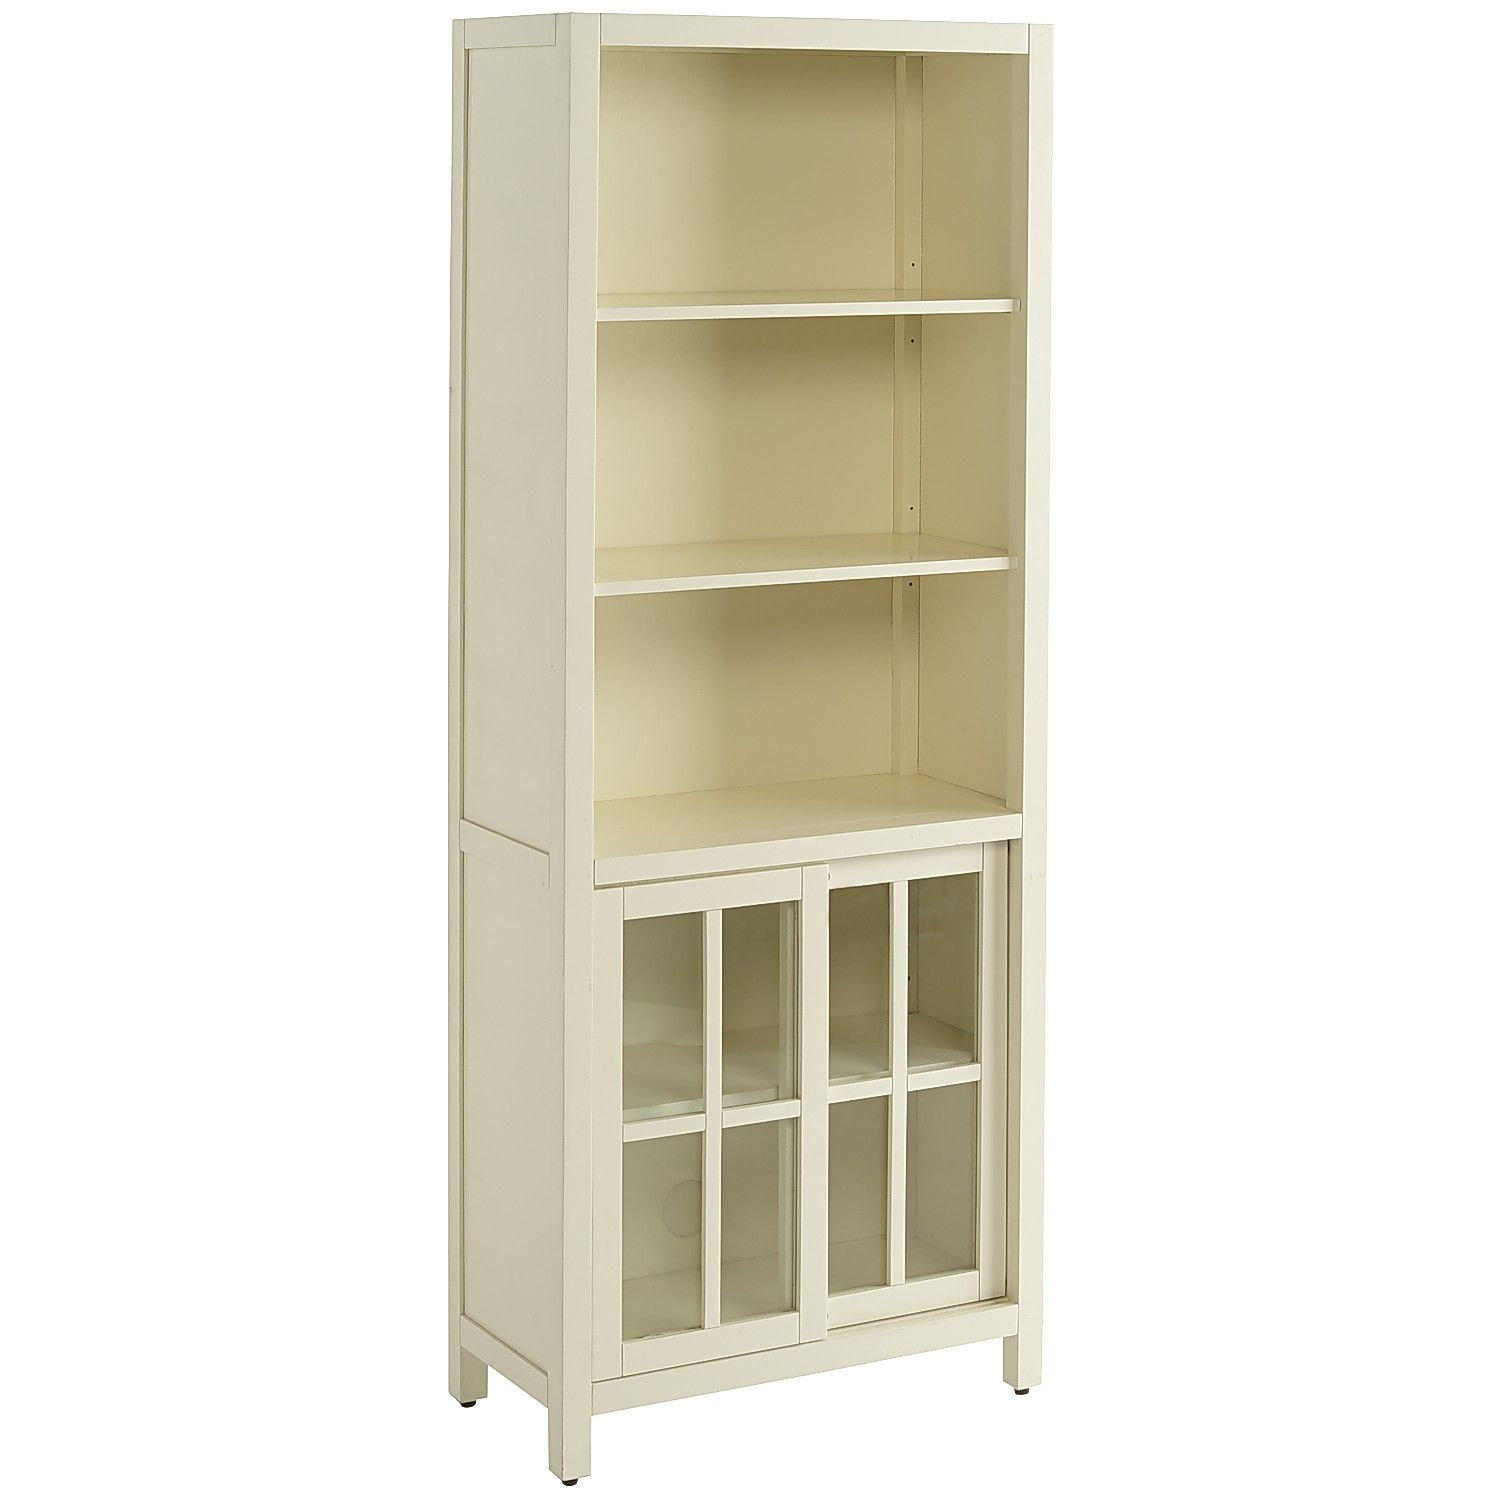 Sausalito Tall Bookcase - Antique White - Glass Tall Bookcase With Doors,  Bookcase Shelves, - Sausalito Tall Bookcase - Antique White - Glass *Shelving